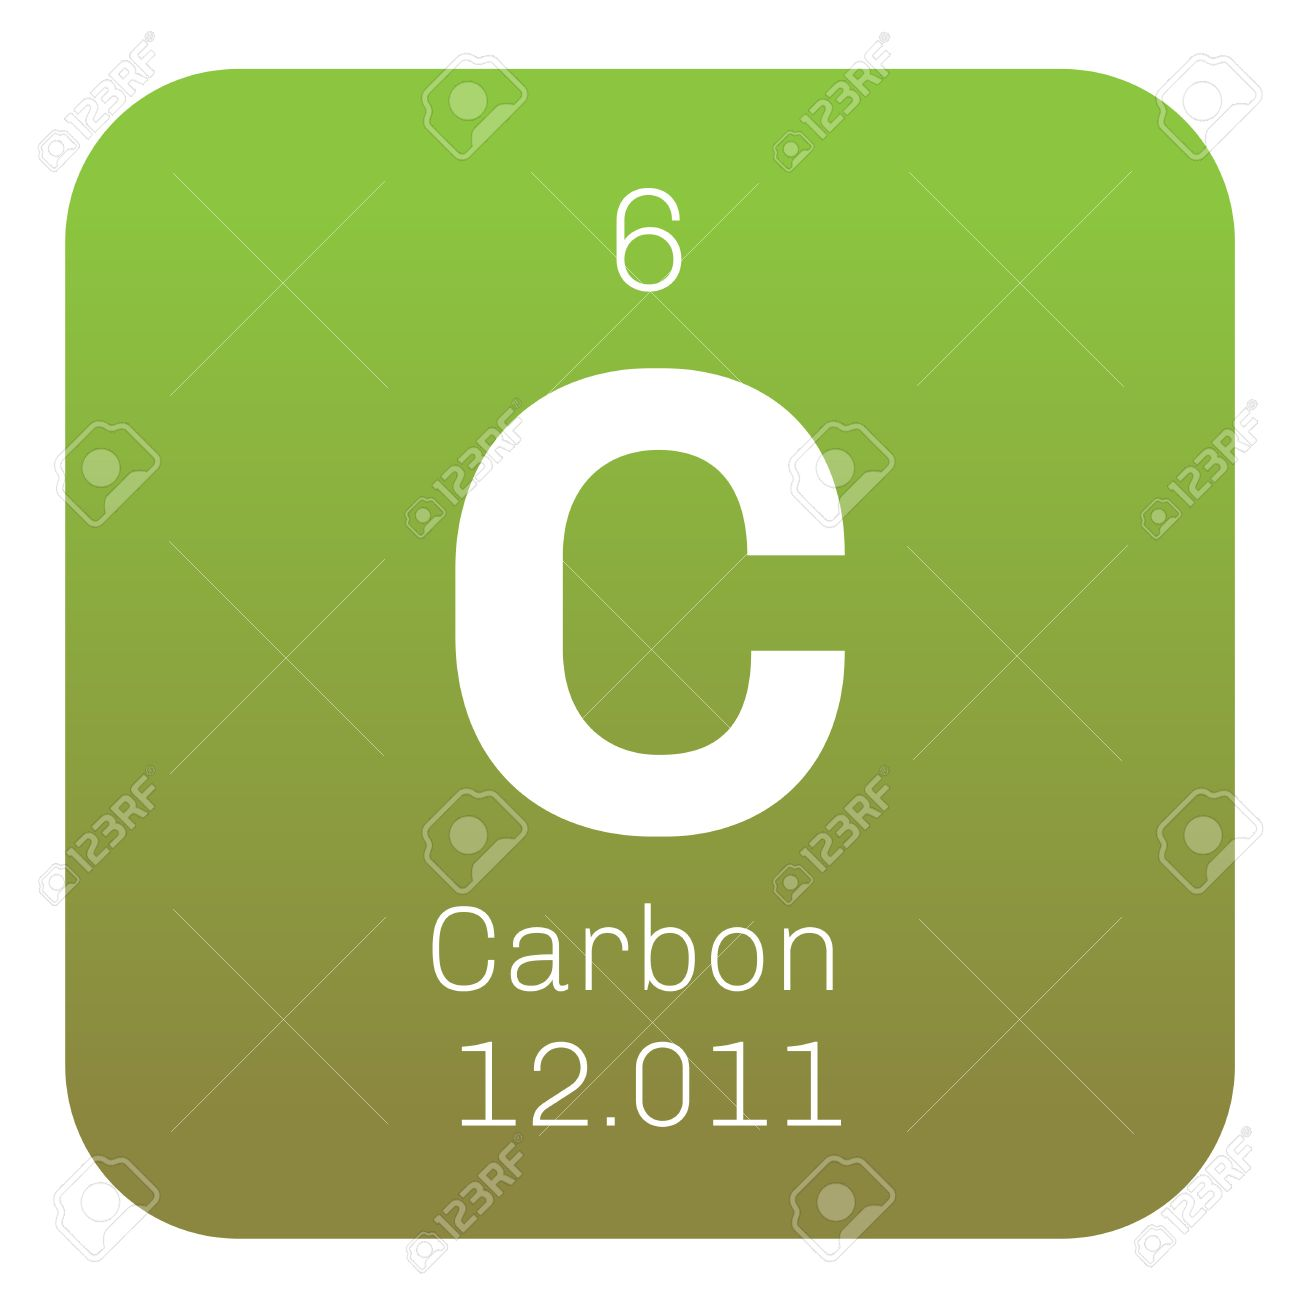 Carbon chemical element graphite and diamond colored icon with carbon chemical element graphite and diamond colored icon with atomic number and atomic weight urtaz Gallery